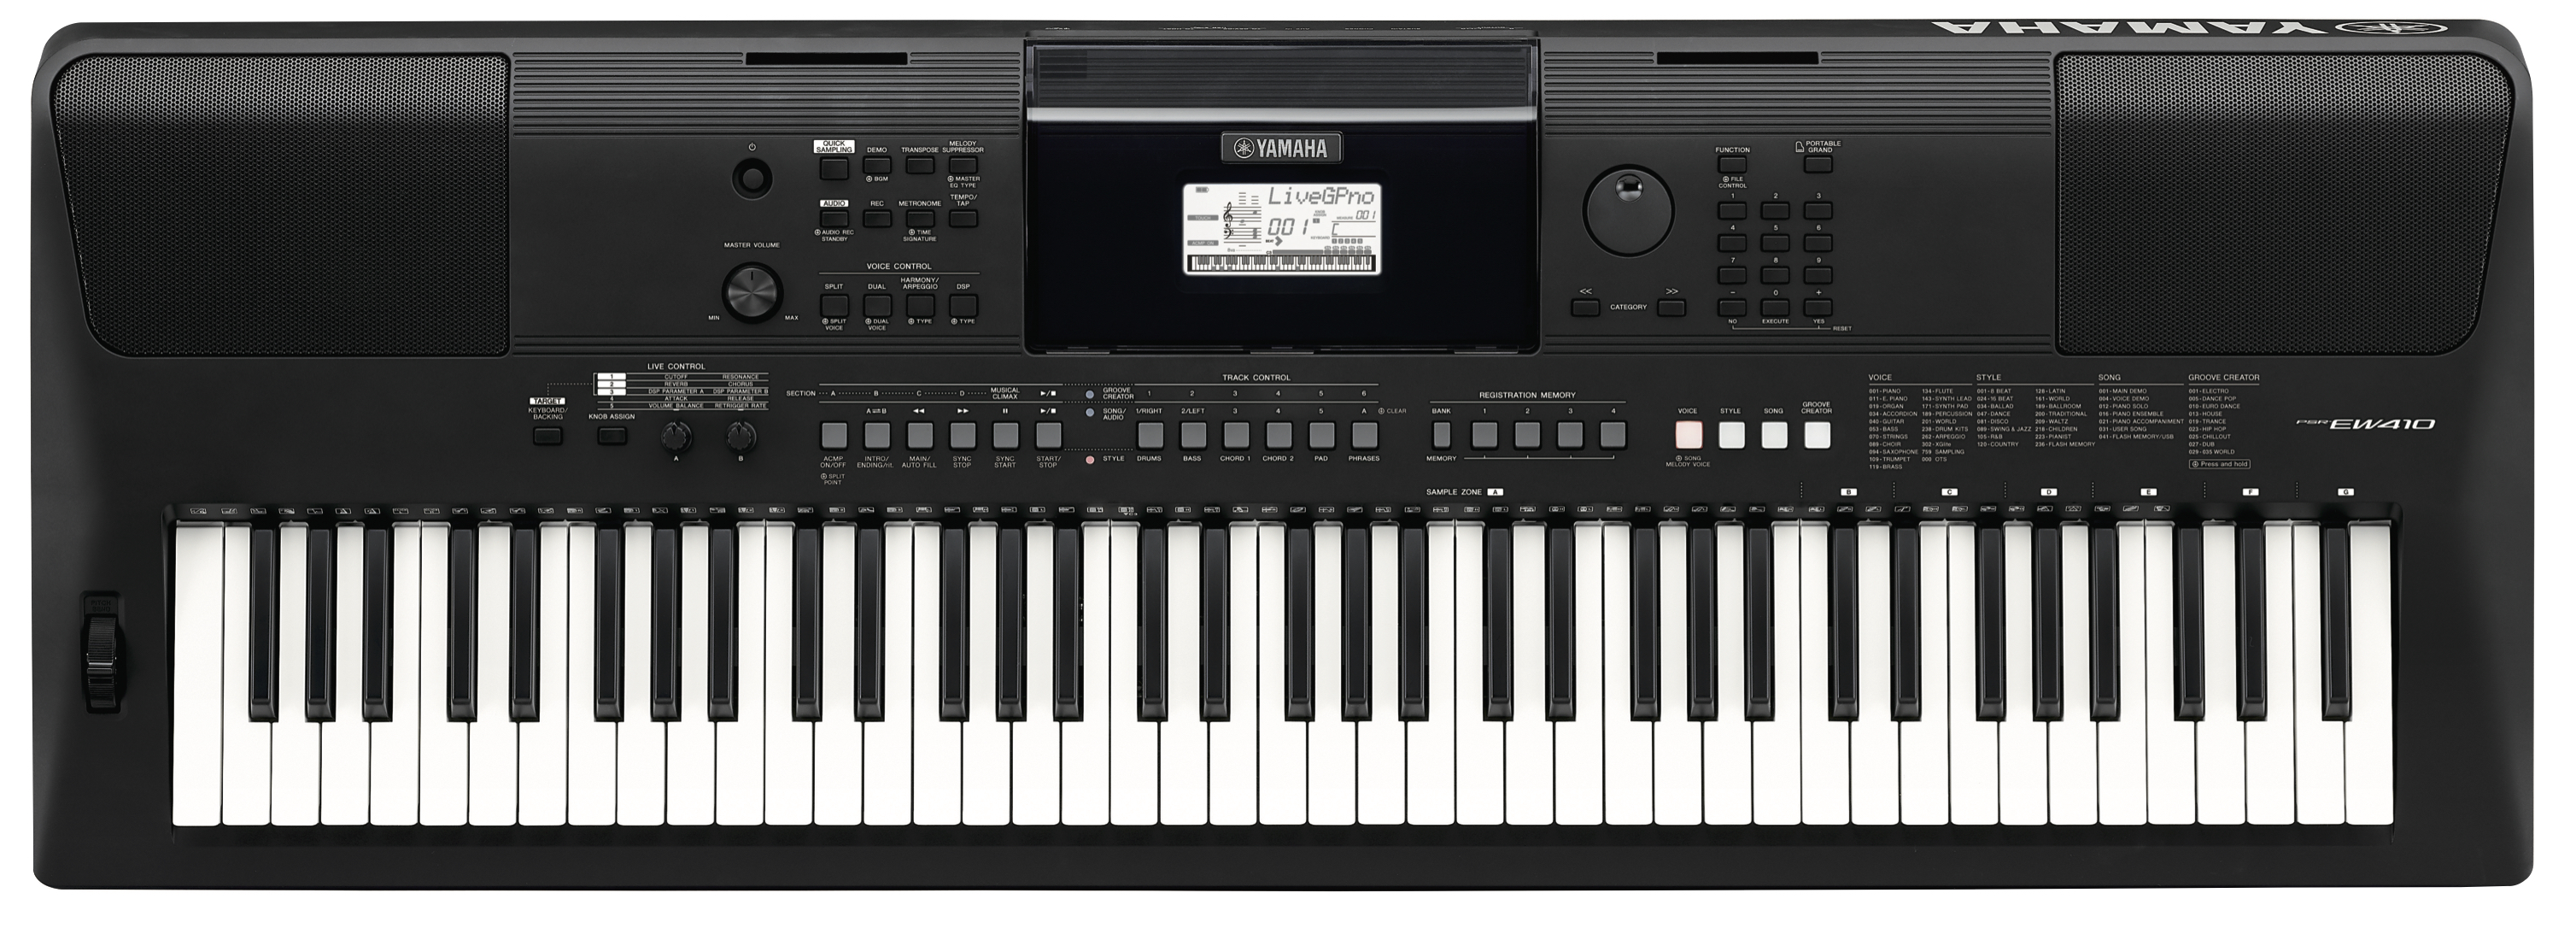 Yamaha introduces the psr ew410 and psr e463 powerful for Yamaha learning keyboard